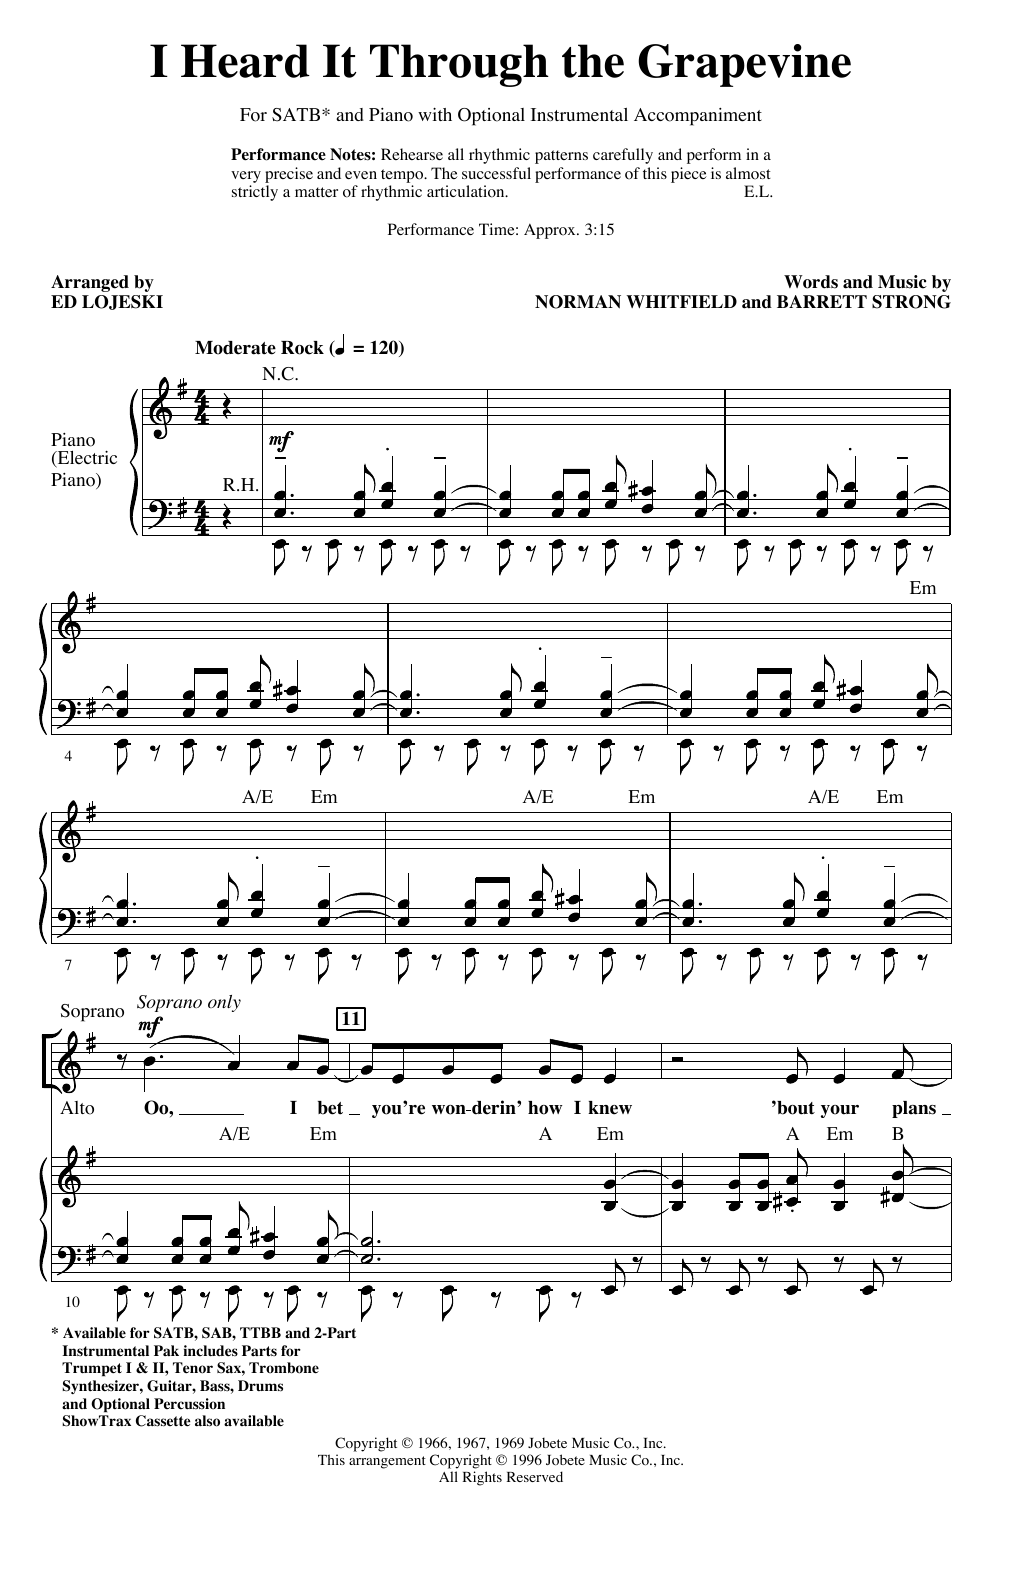 I Heard It Through The Grapevine (arr. Ed Lojeski) Partition Digitale